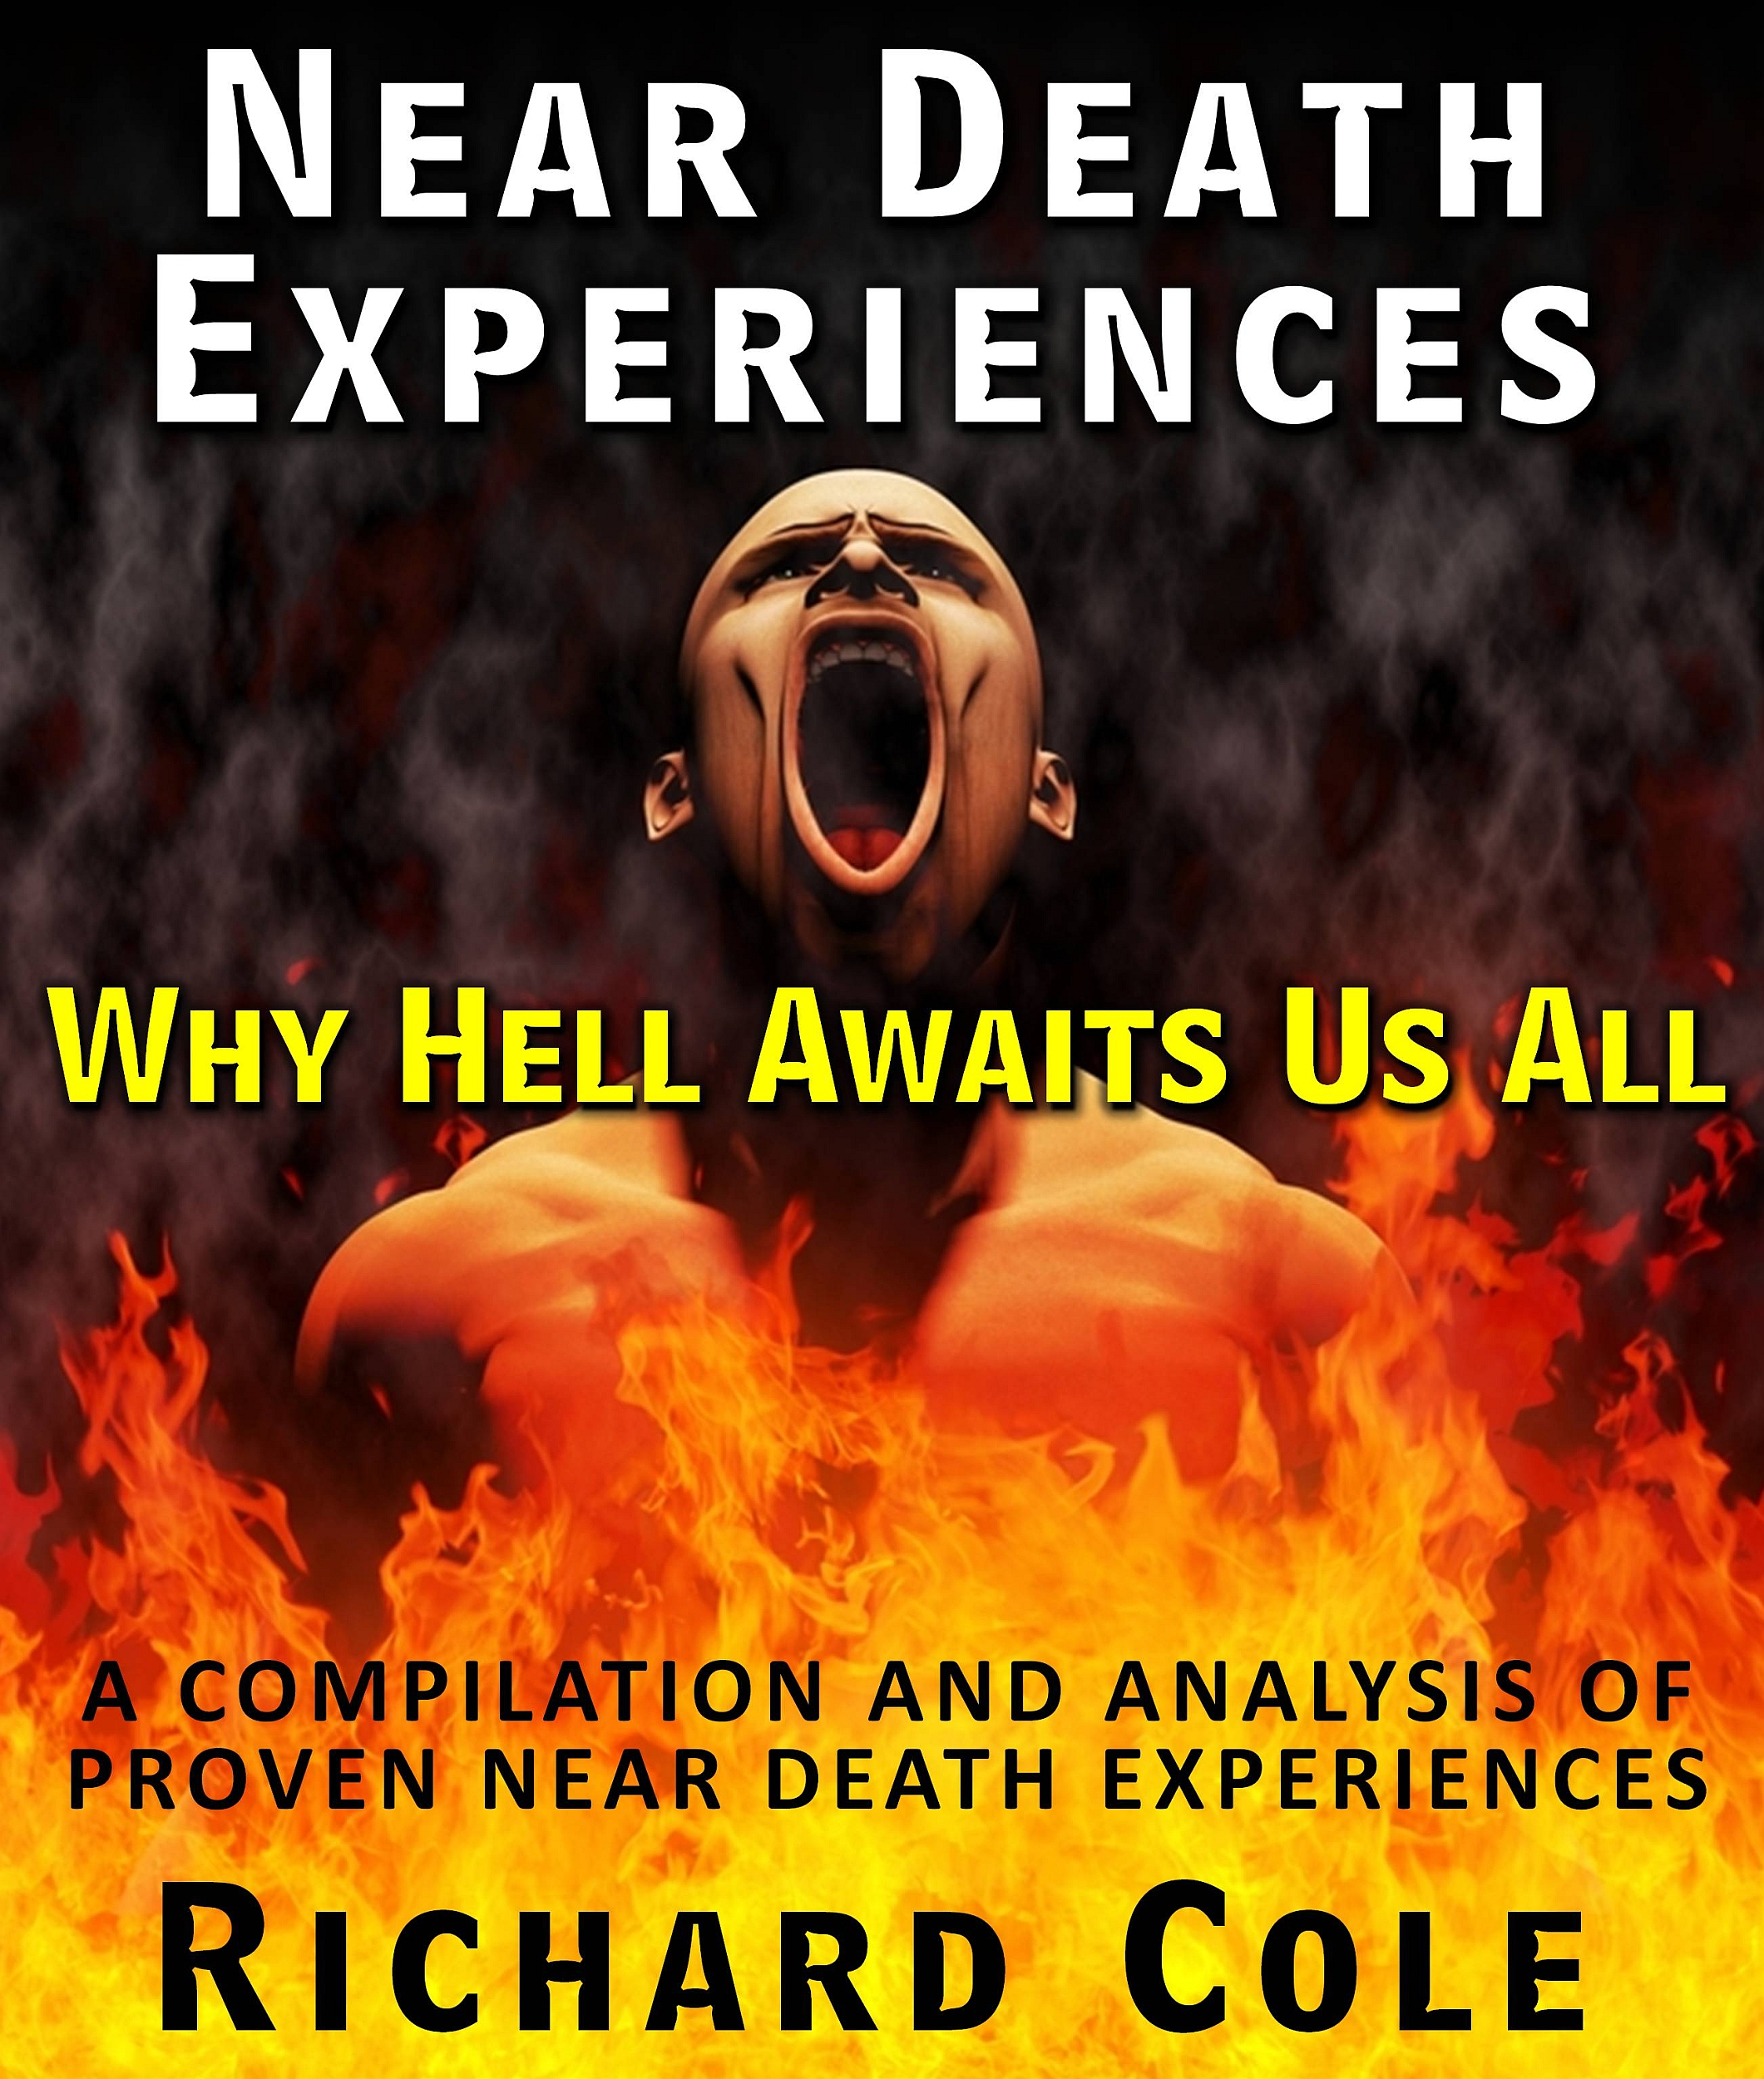 an introduction to the issue of near death experience Co-author of handbook of near-death experiences (2009)  religious issues:  faith, healing, intercessory prayer,  introduction and reference.